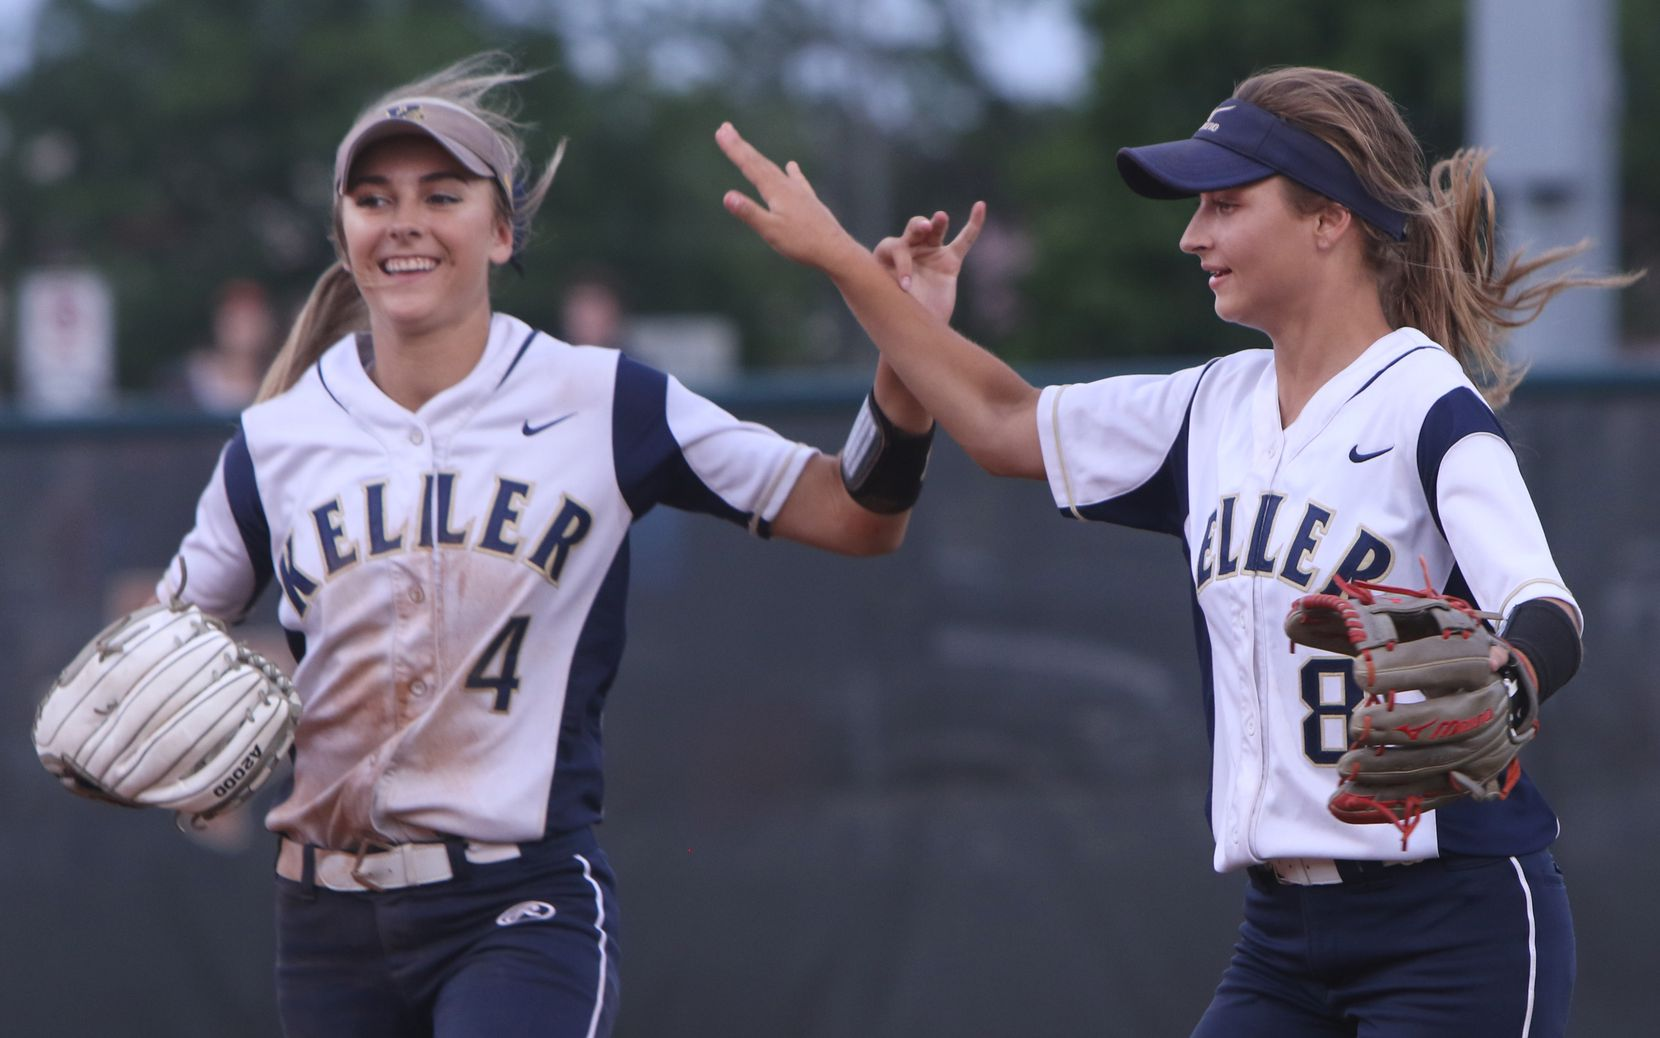 Keller outfielders Amanda Desario (4) and Brook Davis (8) celebrates Davis' catch in right field of a fly ball to end the bottom of the second inning of play against Austin Bowie. The two teams competed in the Class 6A state softball championship game at McCombs Field in Austin on June 3, 2017. (Steve Hamm/Special Contributor)